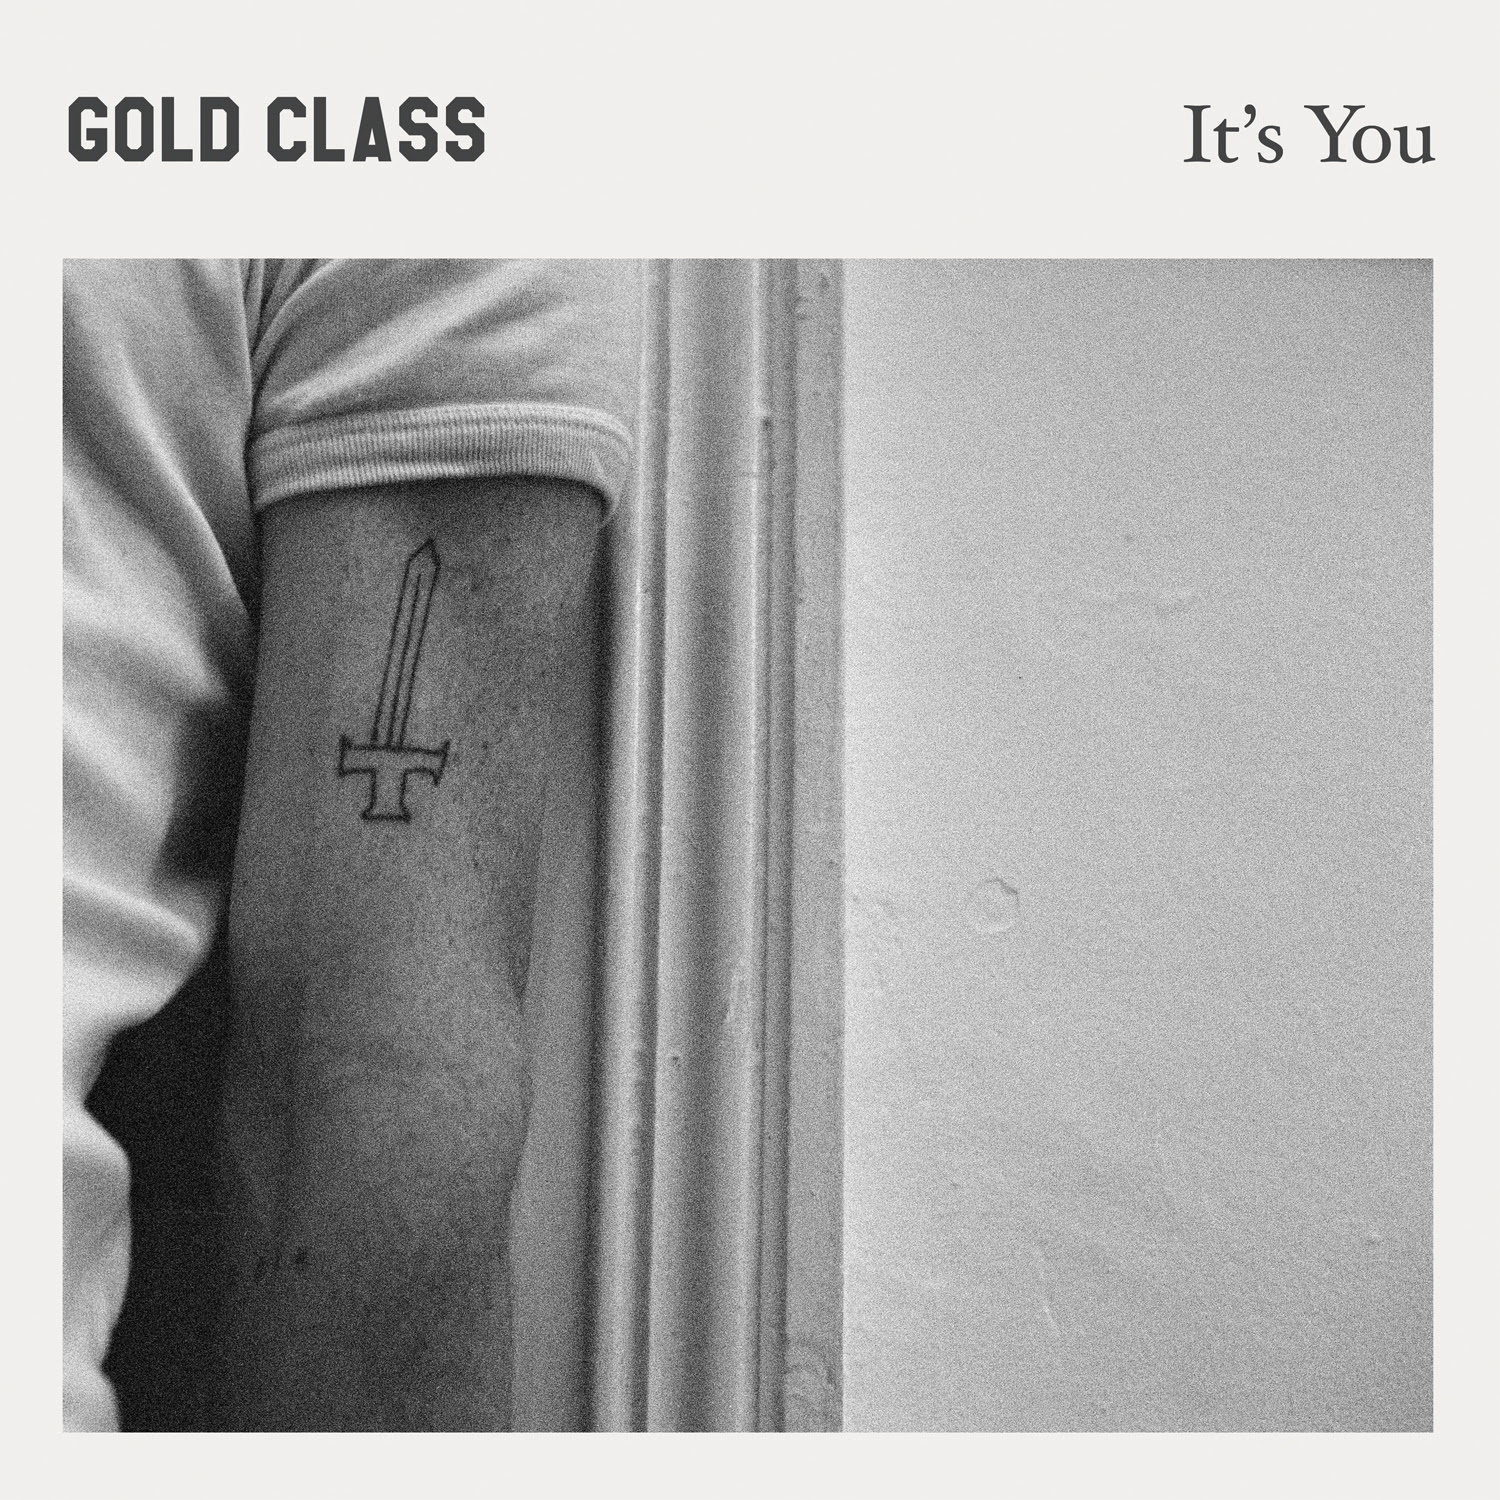 Australian band Gold Class are streaming their debut album 'It's You' in full before it's November 6th release